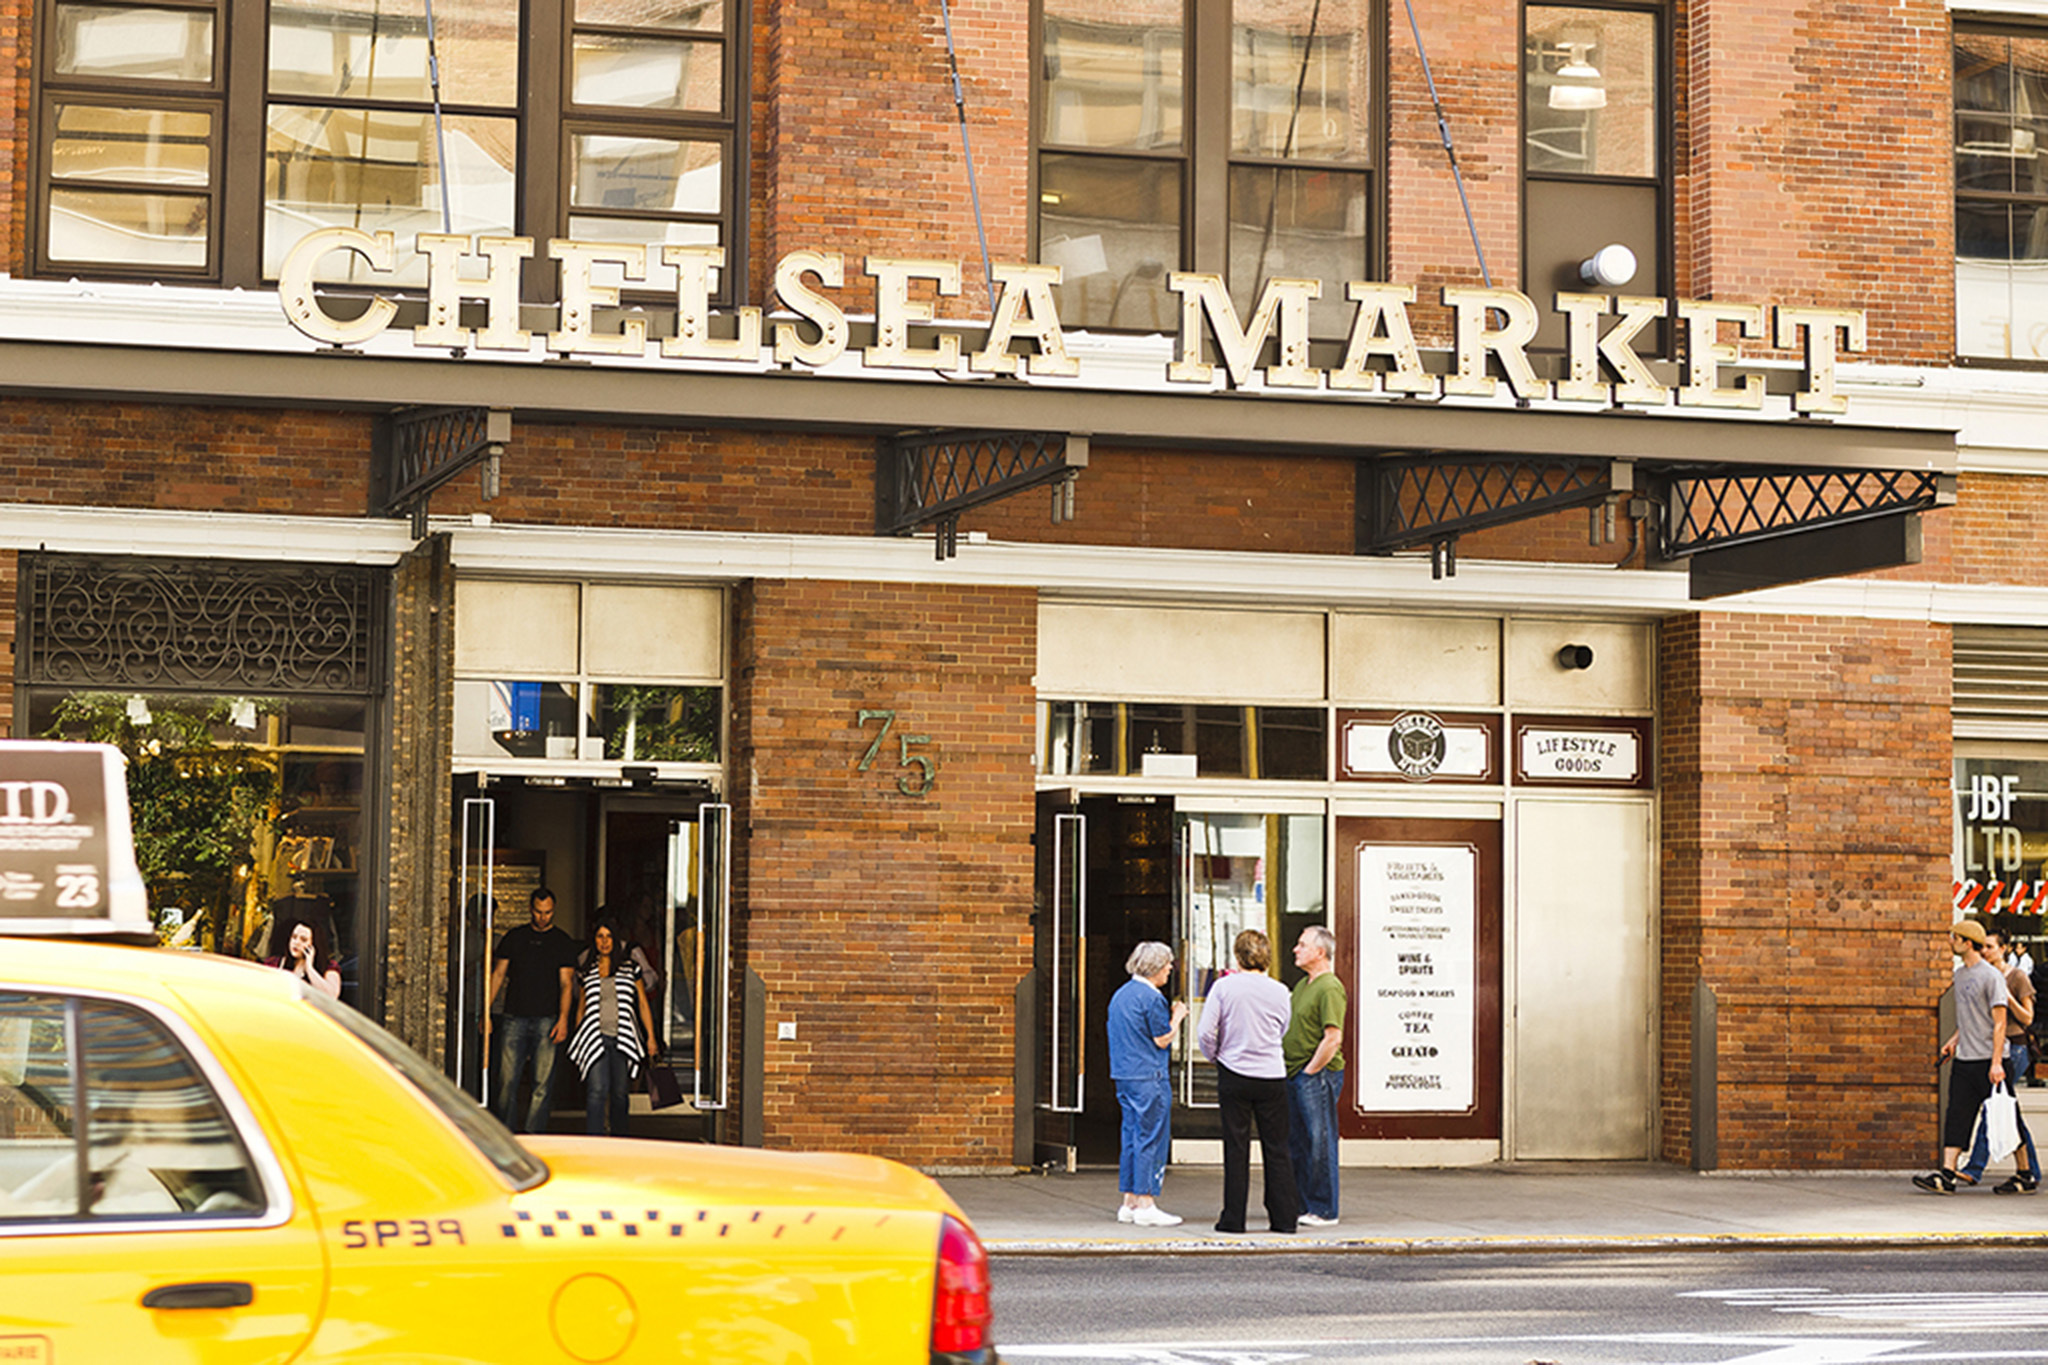 The best places to go in Chelsea Market, NYC